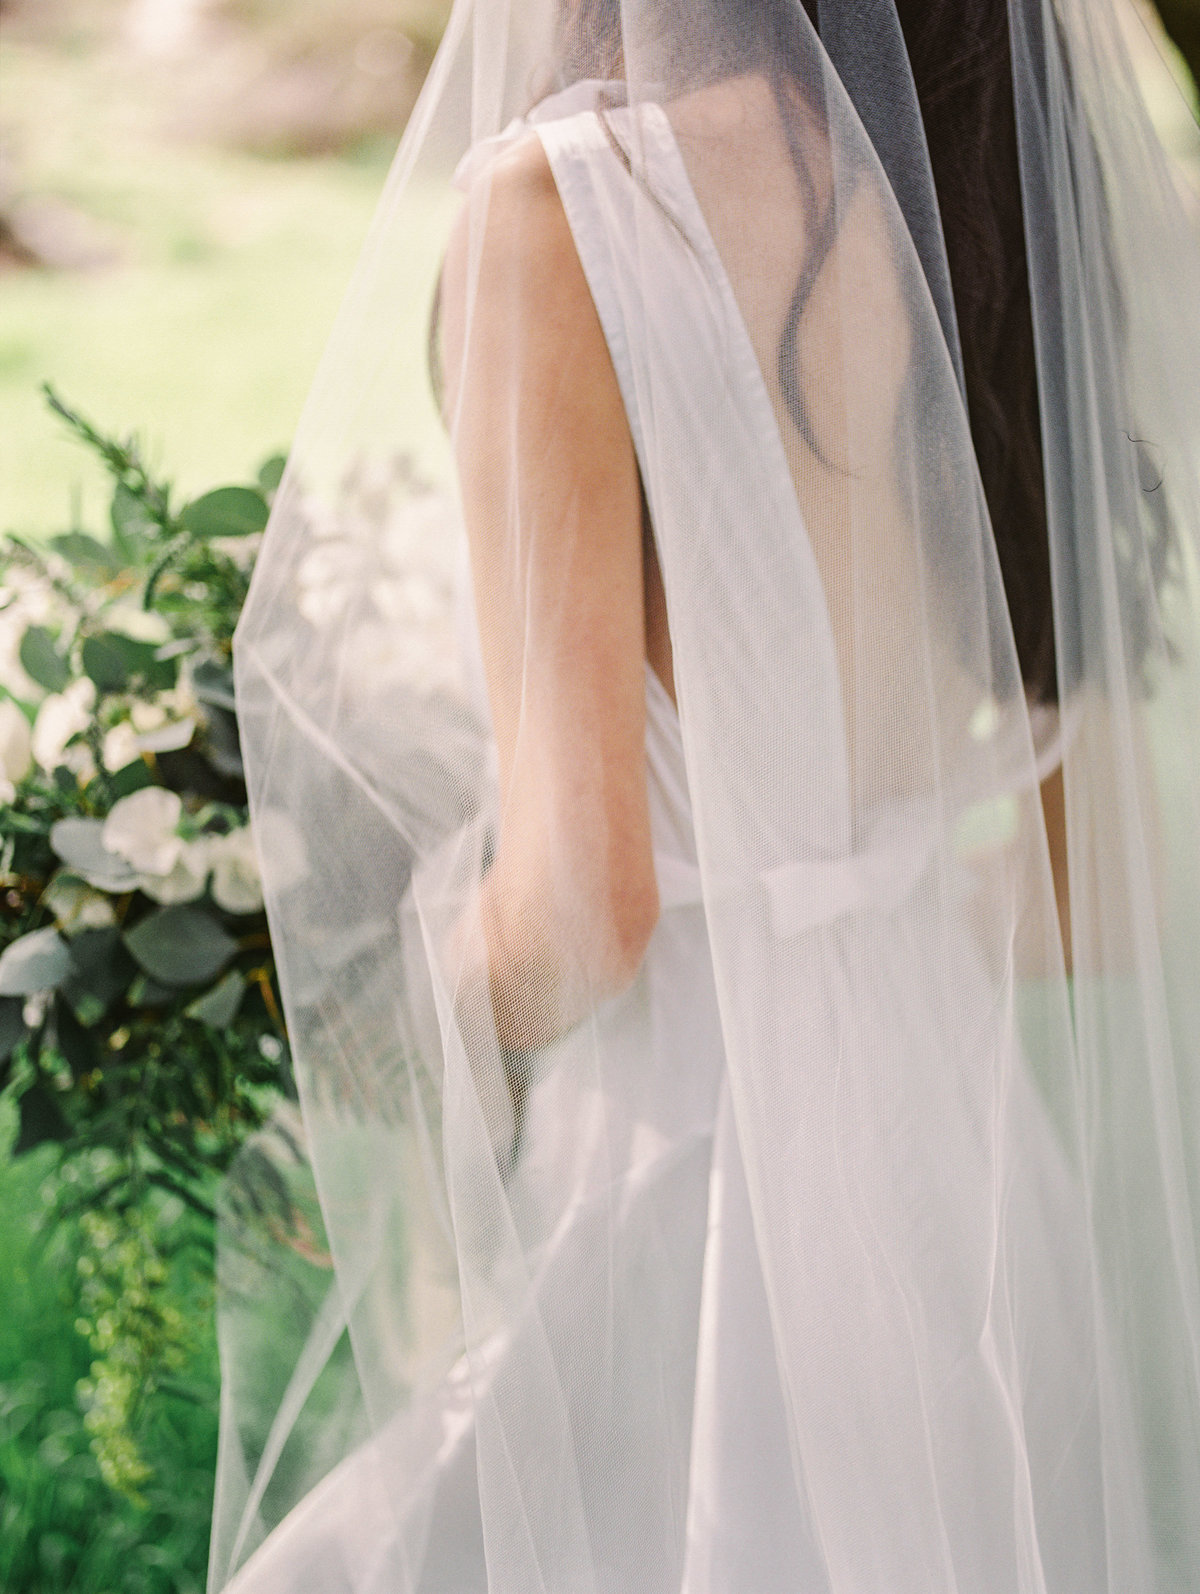 Babsie-Ly-Photography-Fine-Art-Film-Wedding-Bridal-Editorial-in-Hidden-Oaks-San-Diego-030